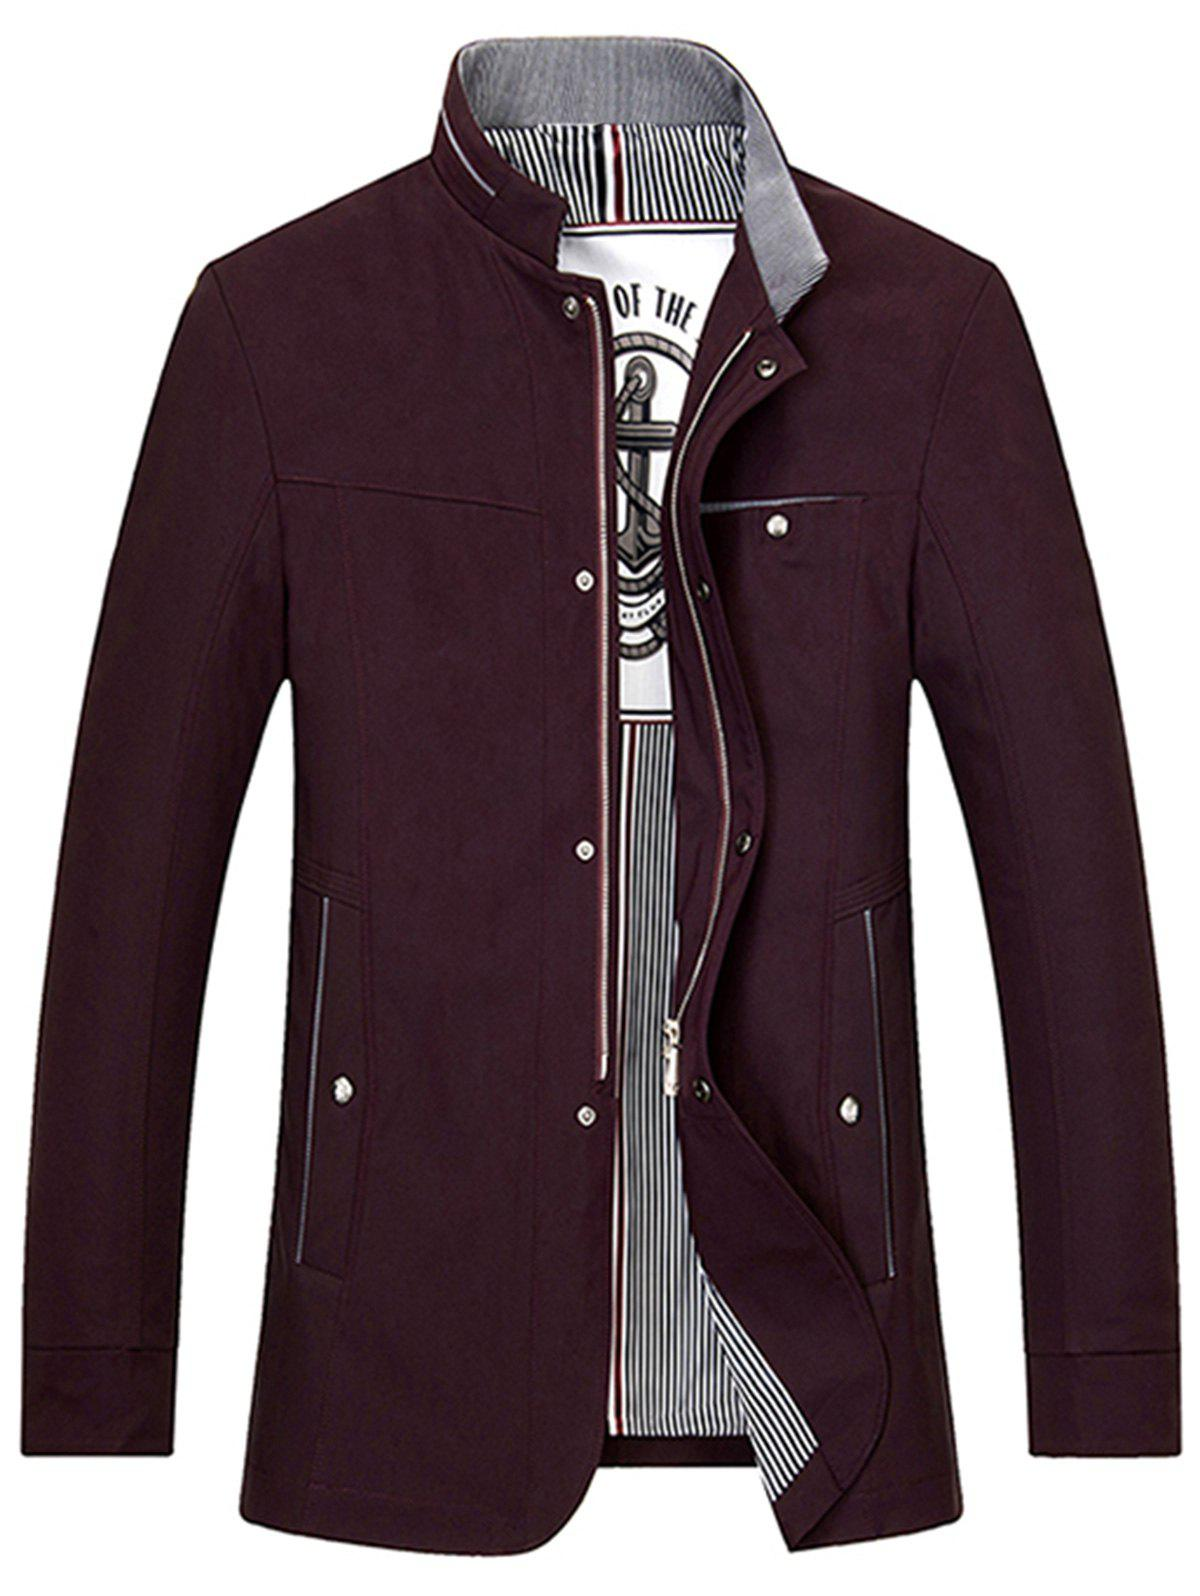 Slim Fit Stand Collar Zip Up Jacket - WINE RED L